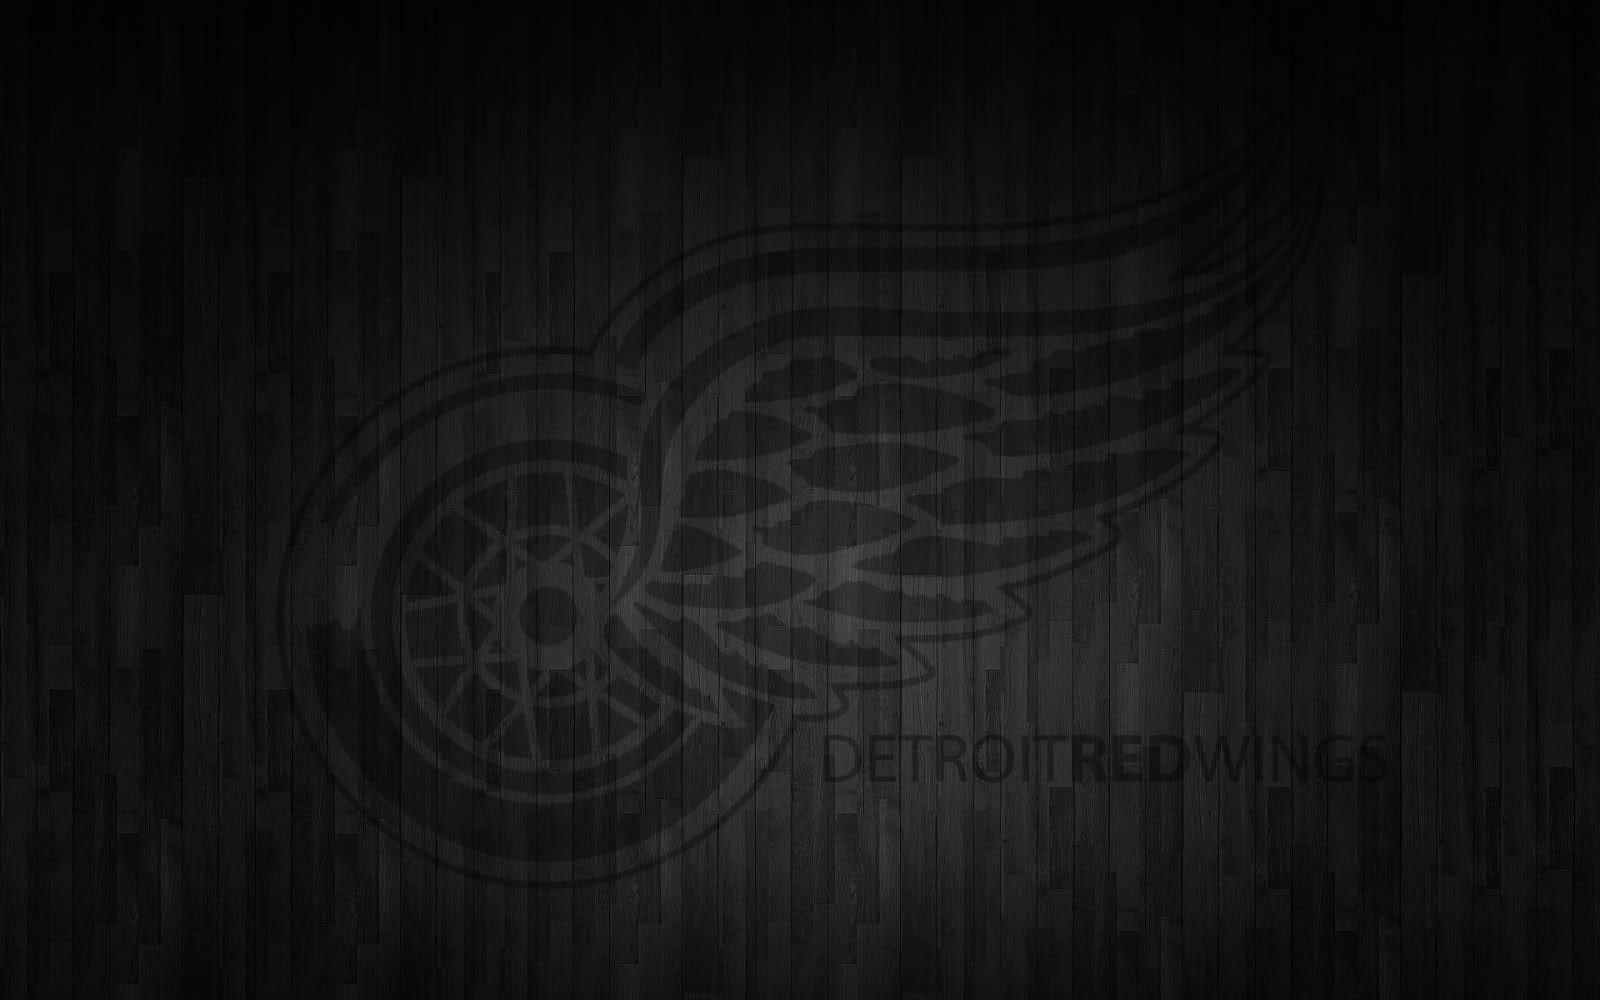 Detroit Desktop Wallpaper Posted By Zoey Anderson